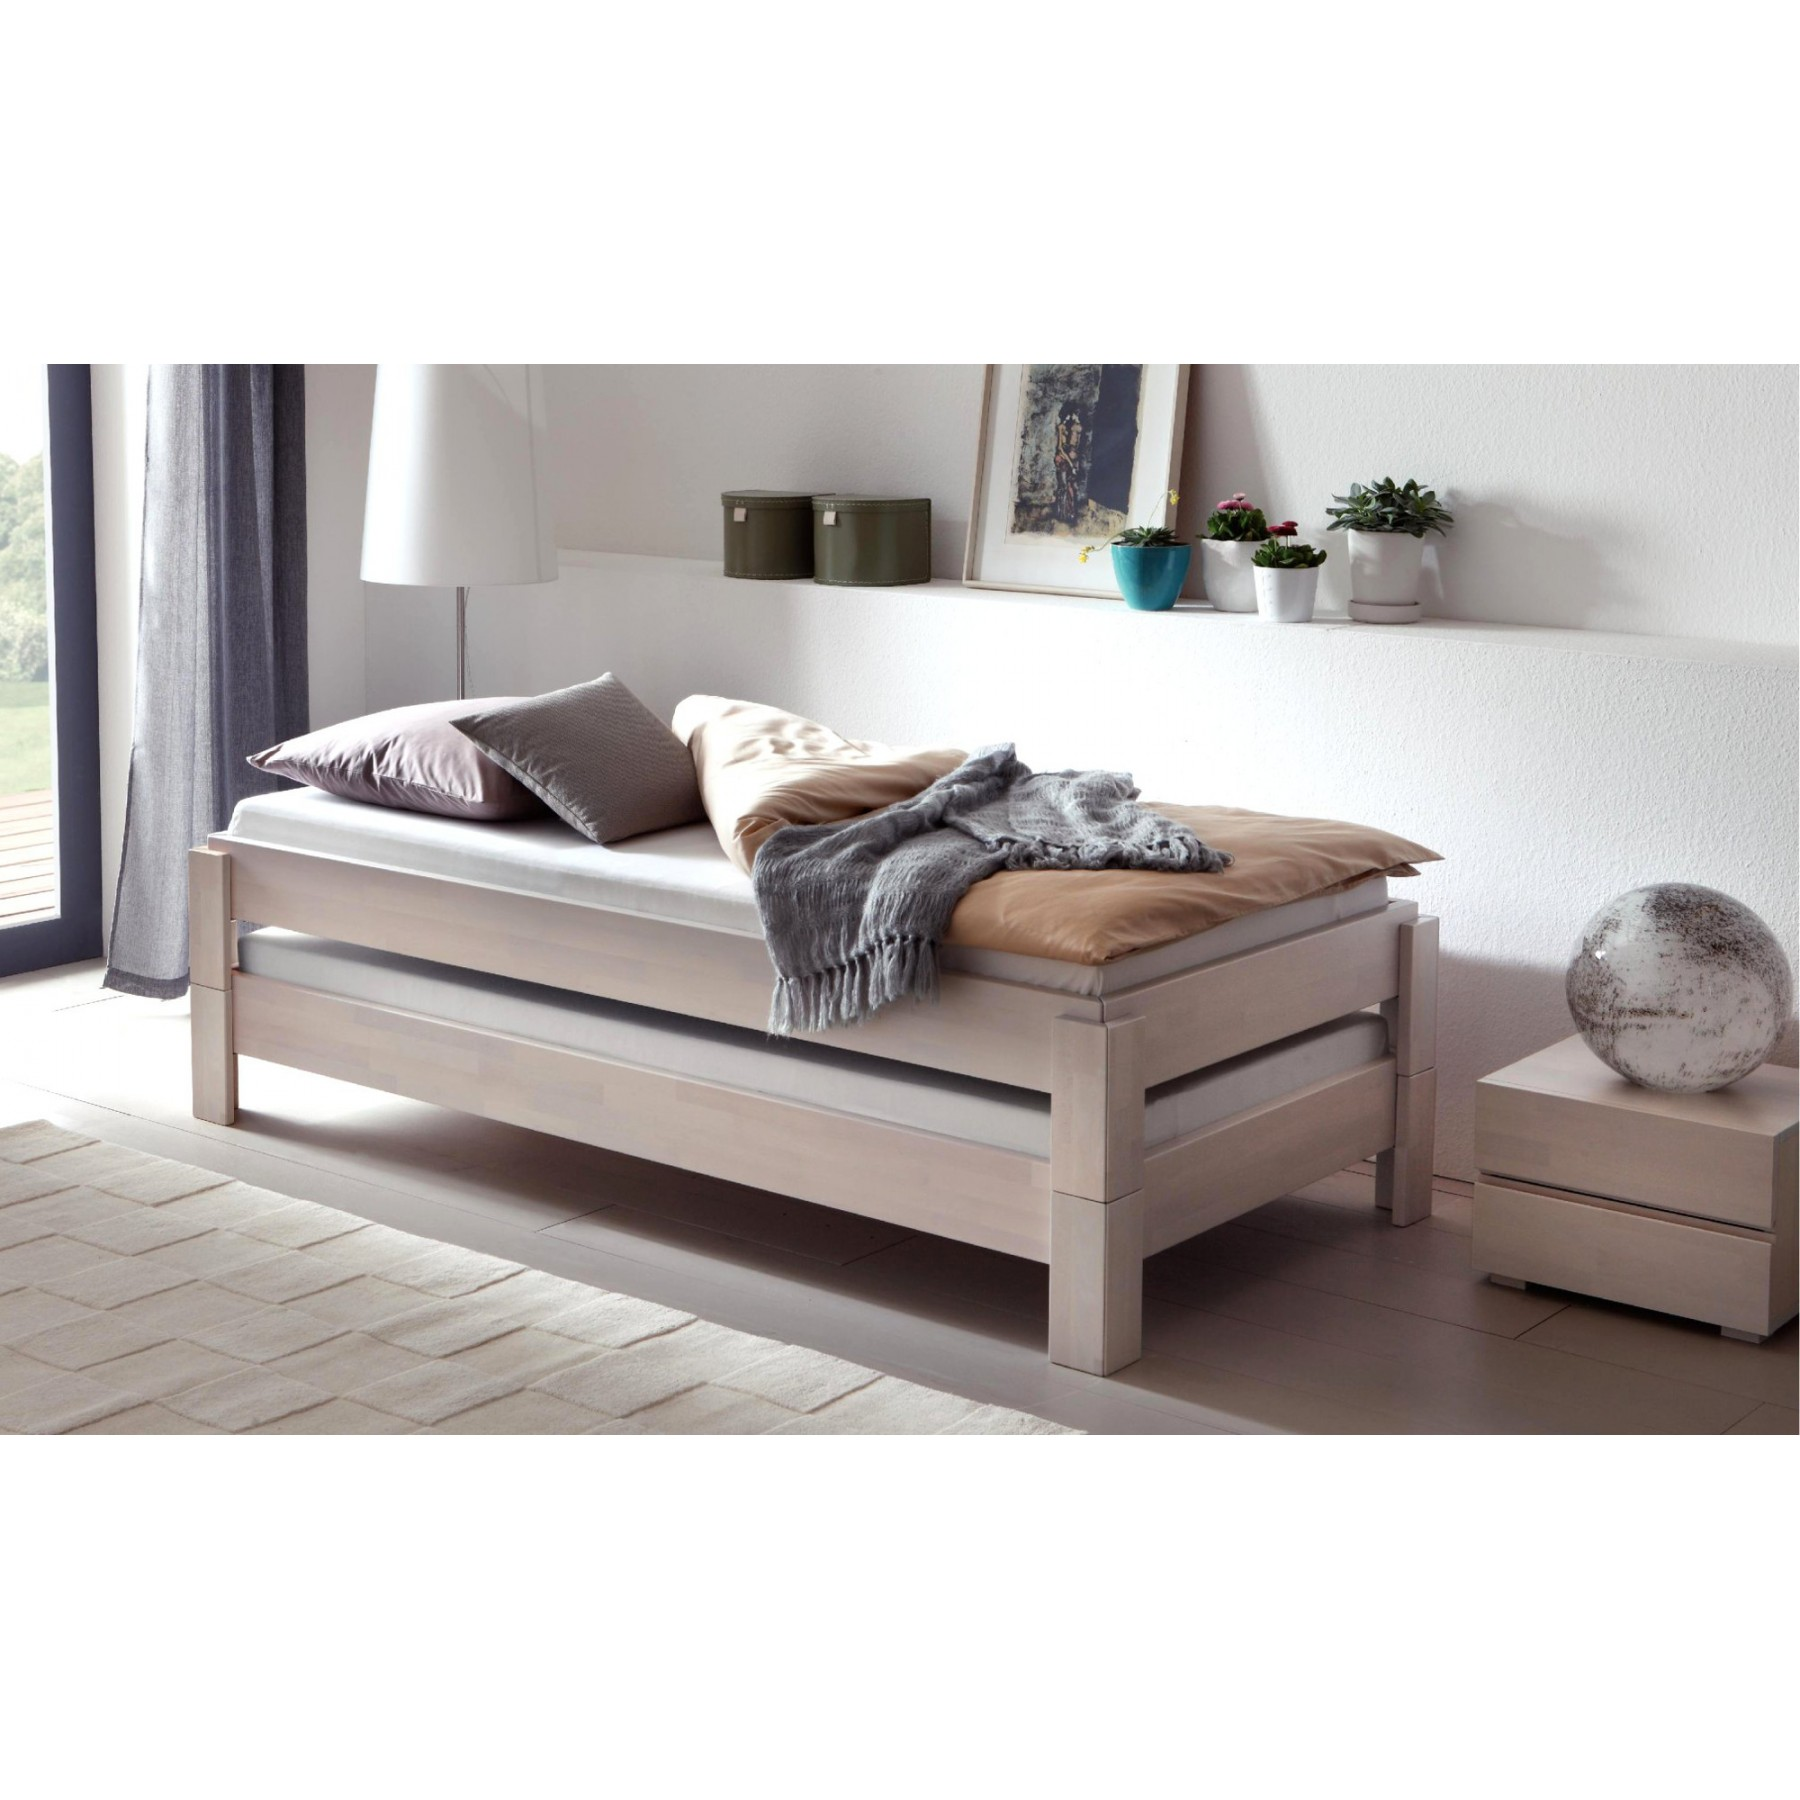 matelas pour lit gigogne maison design. Black Bedroom Furniture Sets. Home Design Ideas